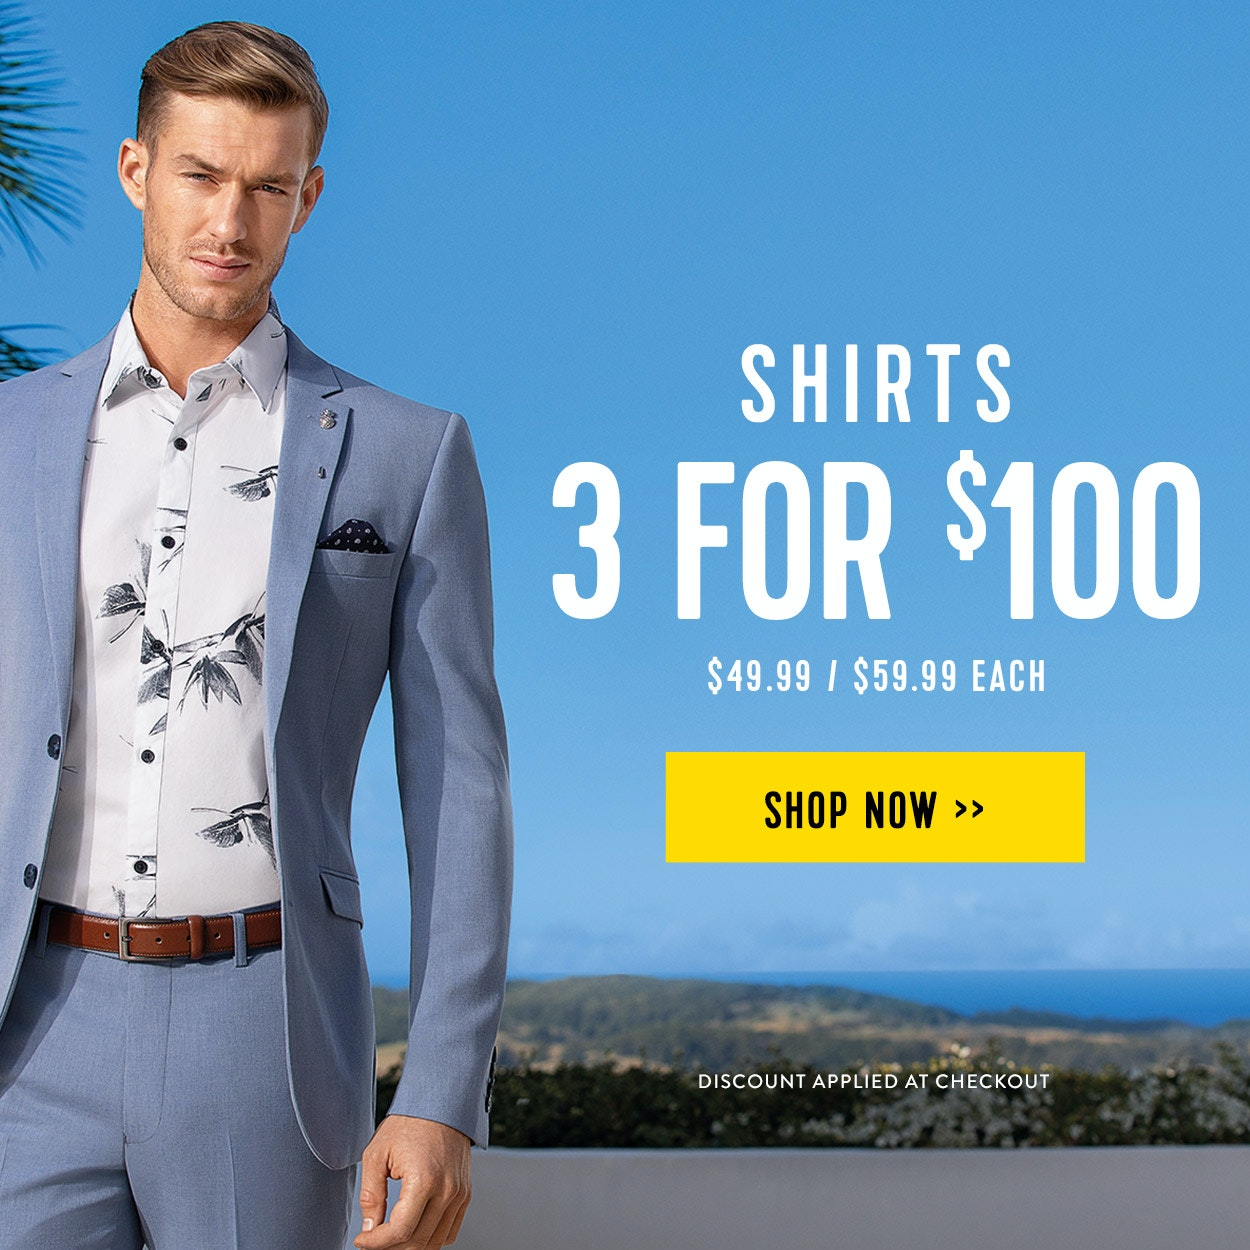 Shirt 3 for $100